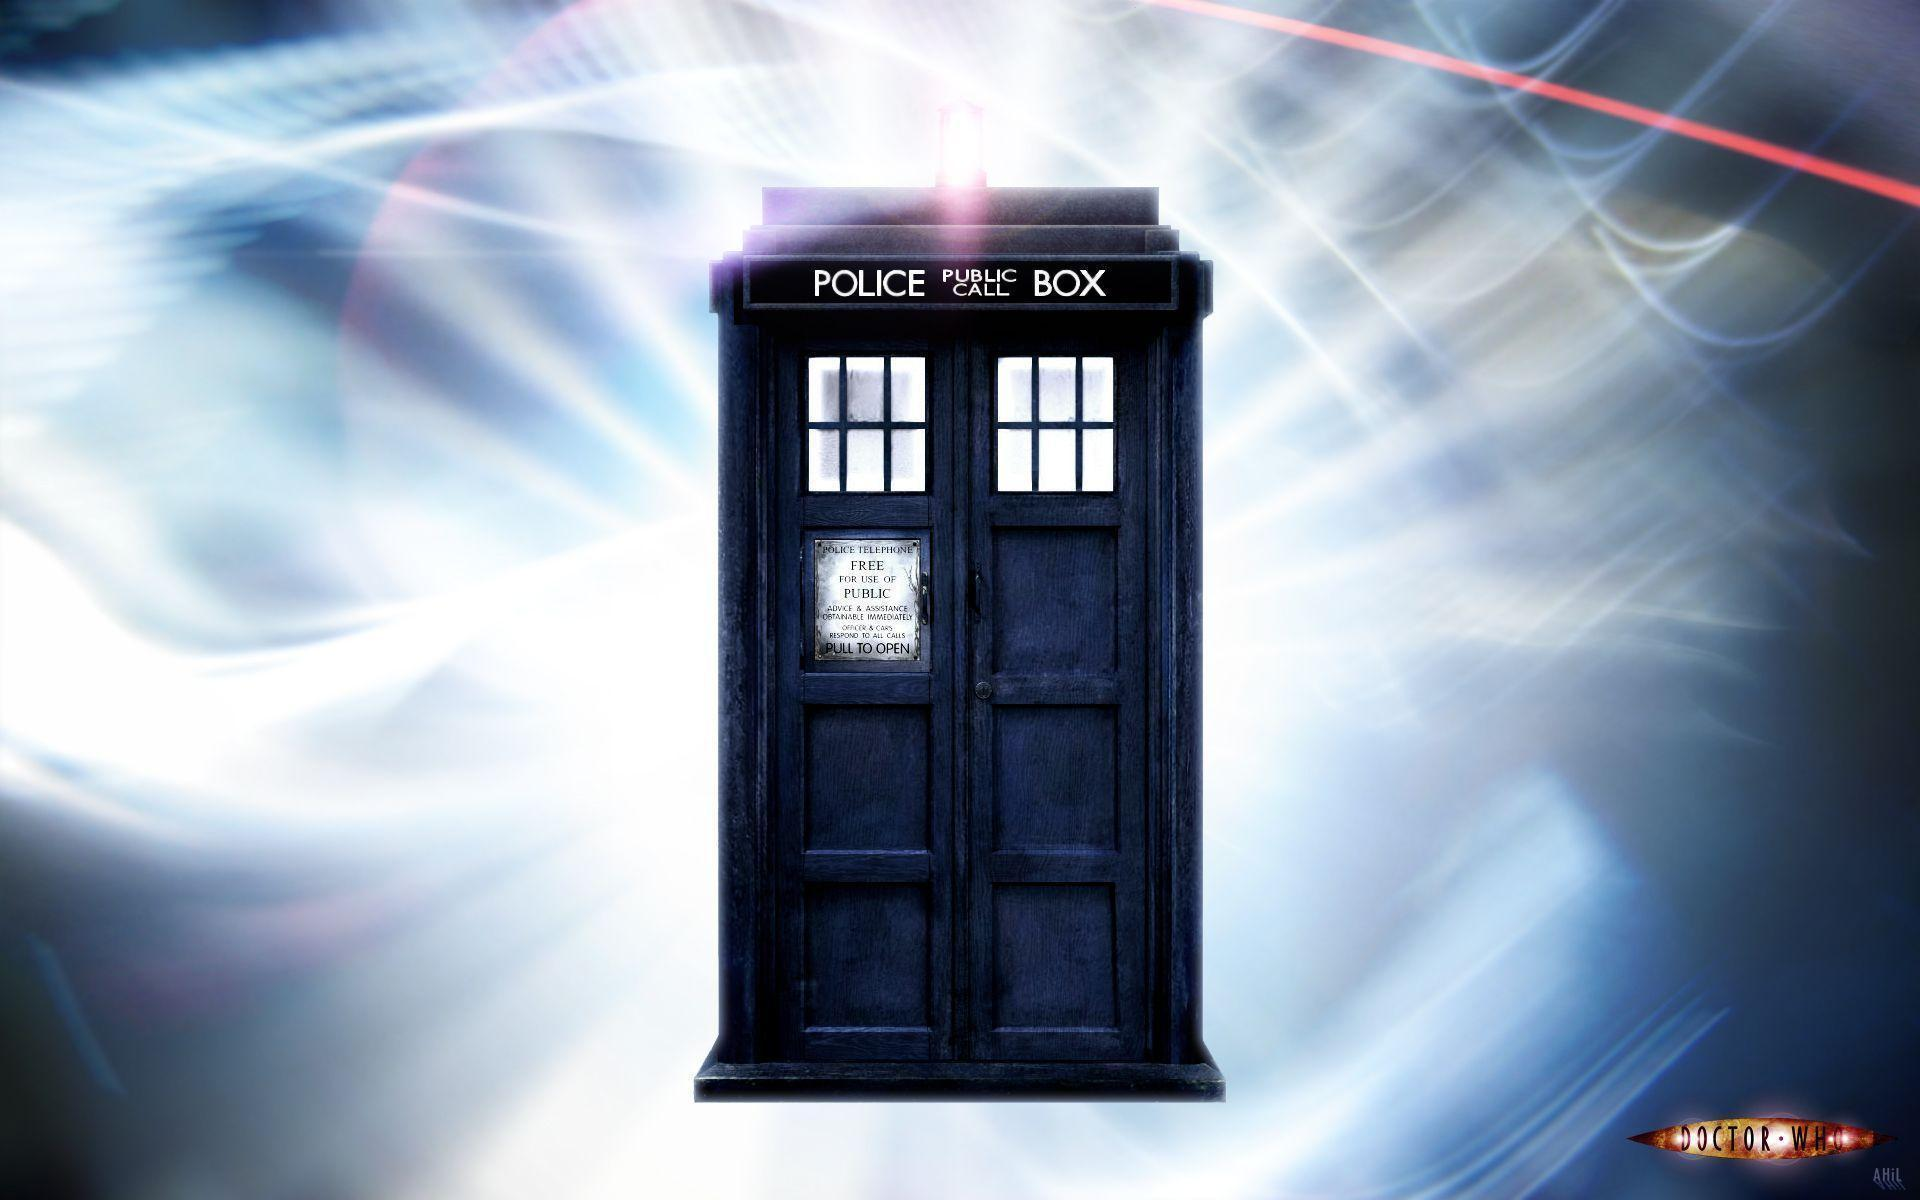 tardis images hd wallpaper - photo #15